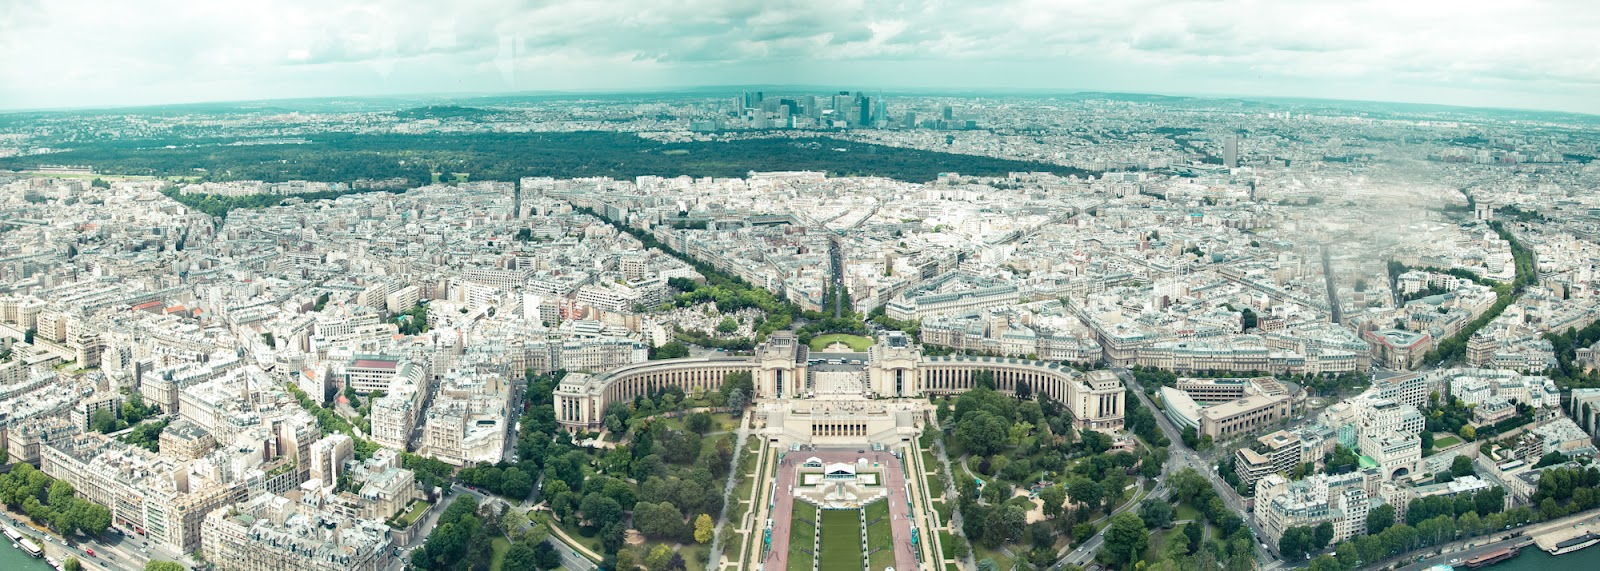 Taken during the Paris/Documenta 2012 Field School, photo courtesy of  Kyubo Yun . A majestic view of Paris from atop the Eiffel Tower-- notice the Haussmannized streets and urban planning.